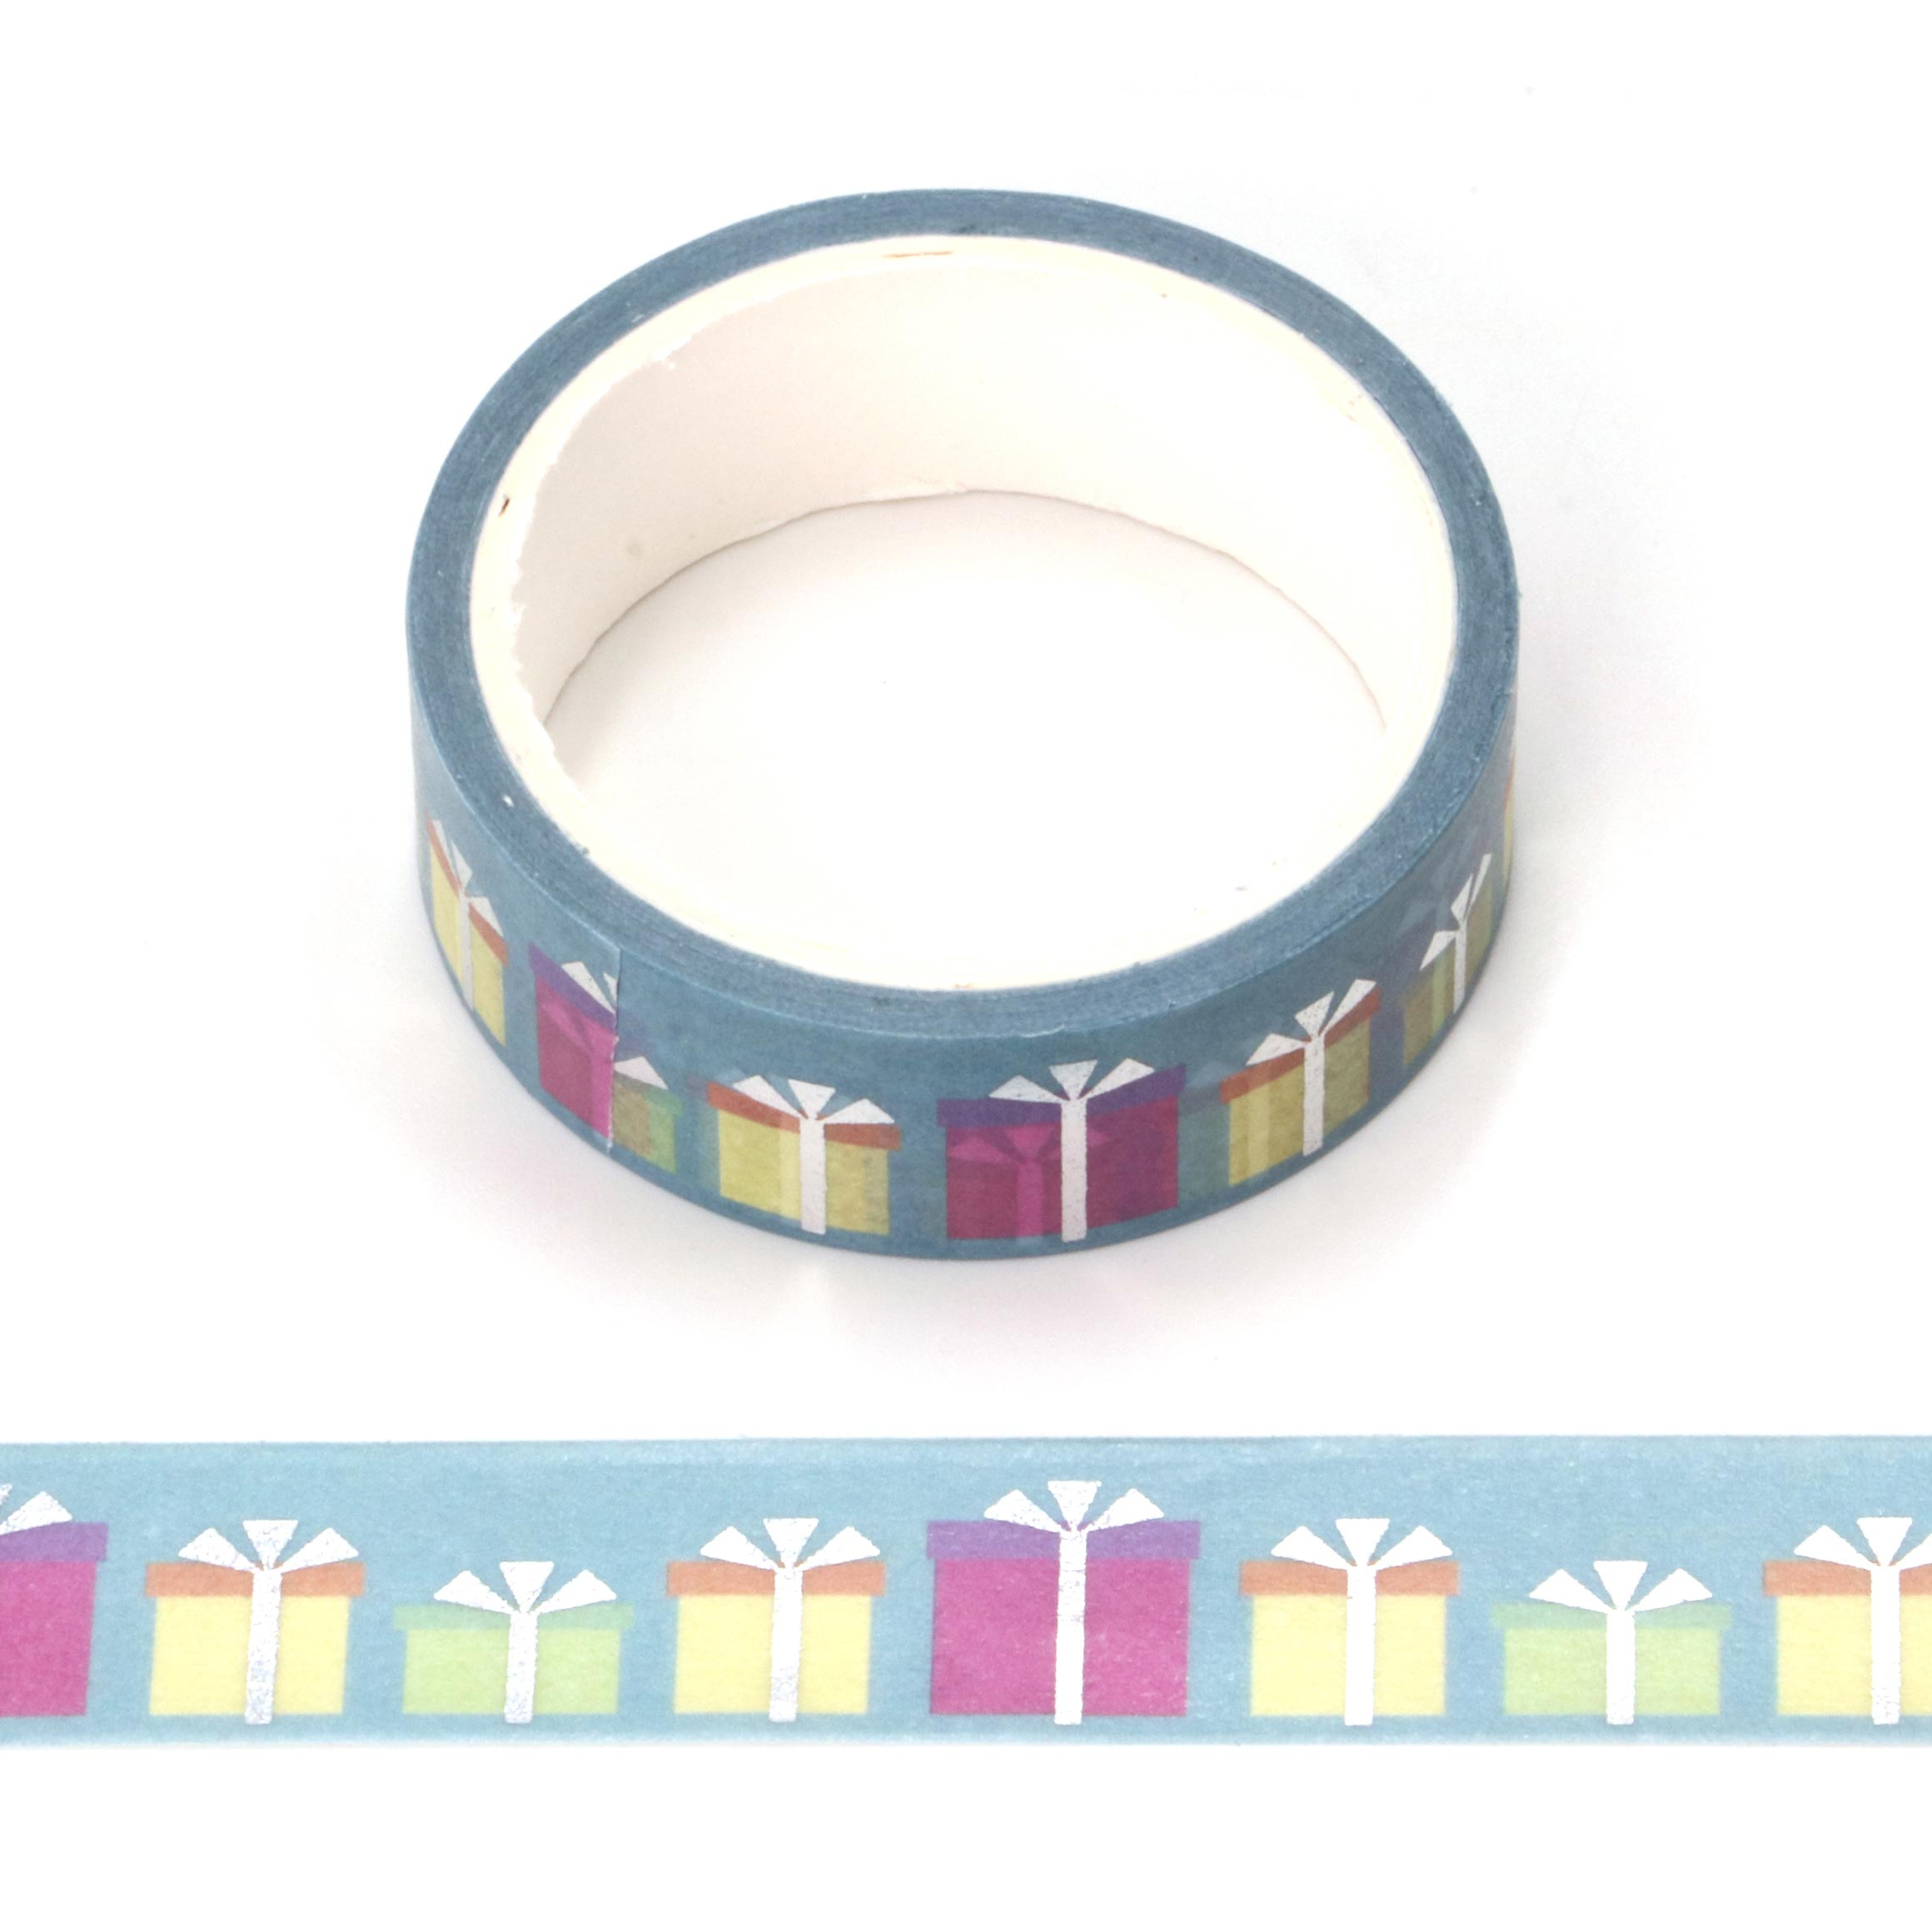 1PC Decorative Snow Deer Christmas Gift Washi Tape Rice Paper DIY Scrapbooking Adhesive Masking Tape 1.5cm*5m Stationery